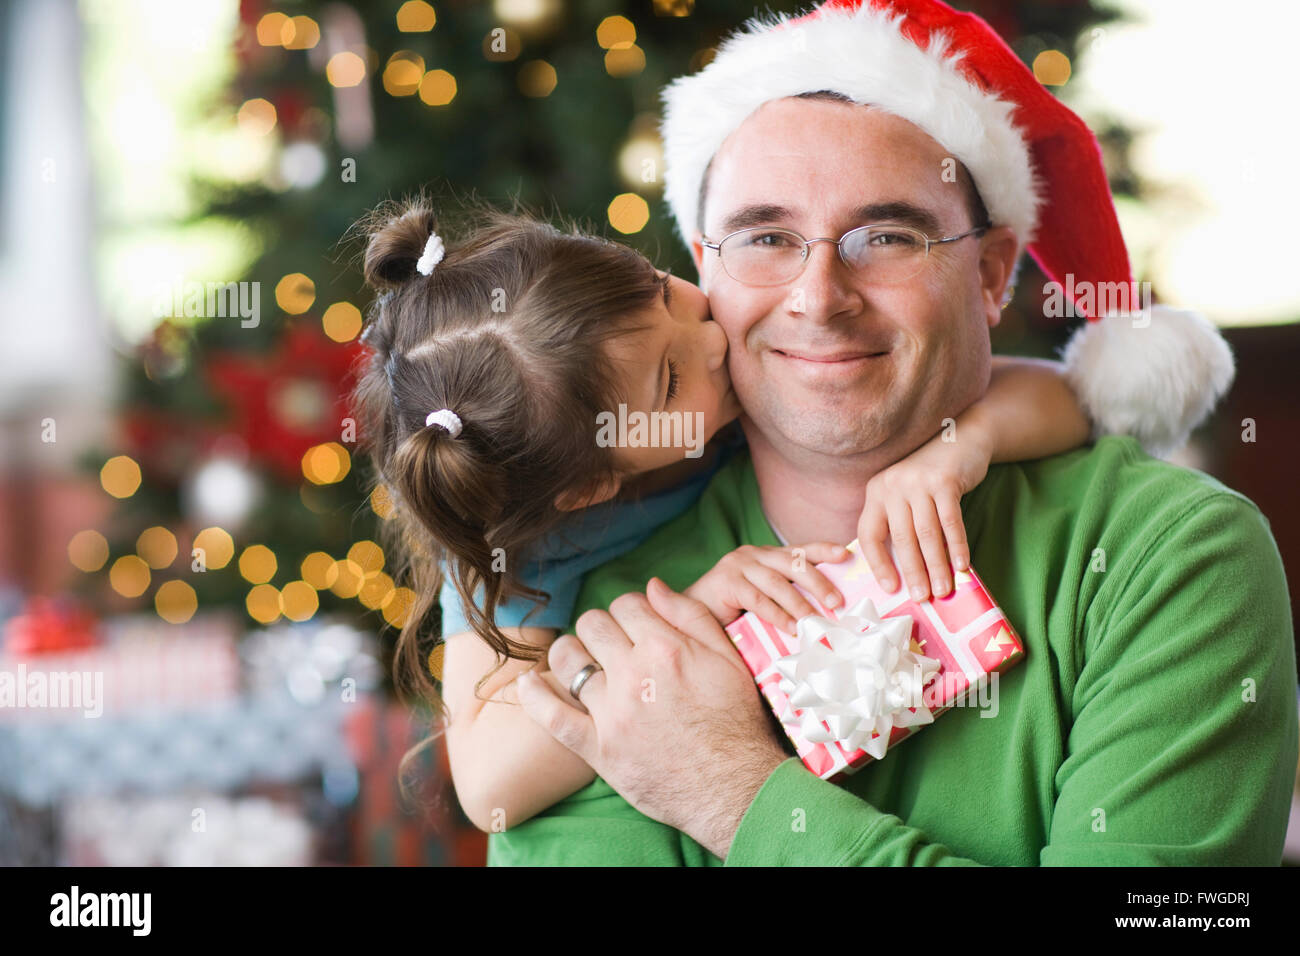 A Man And Girl Father Daughter Hugging Exchanging Presents By Christmas Tree